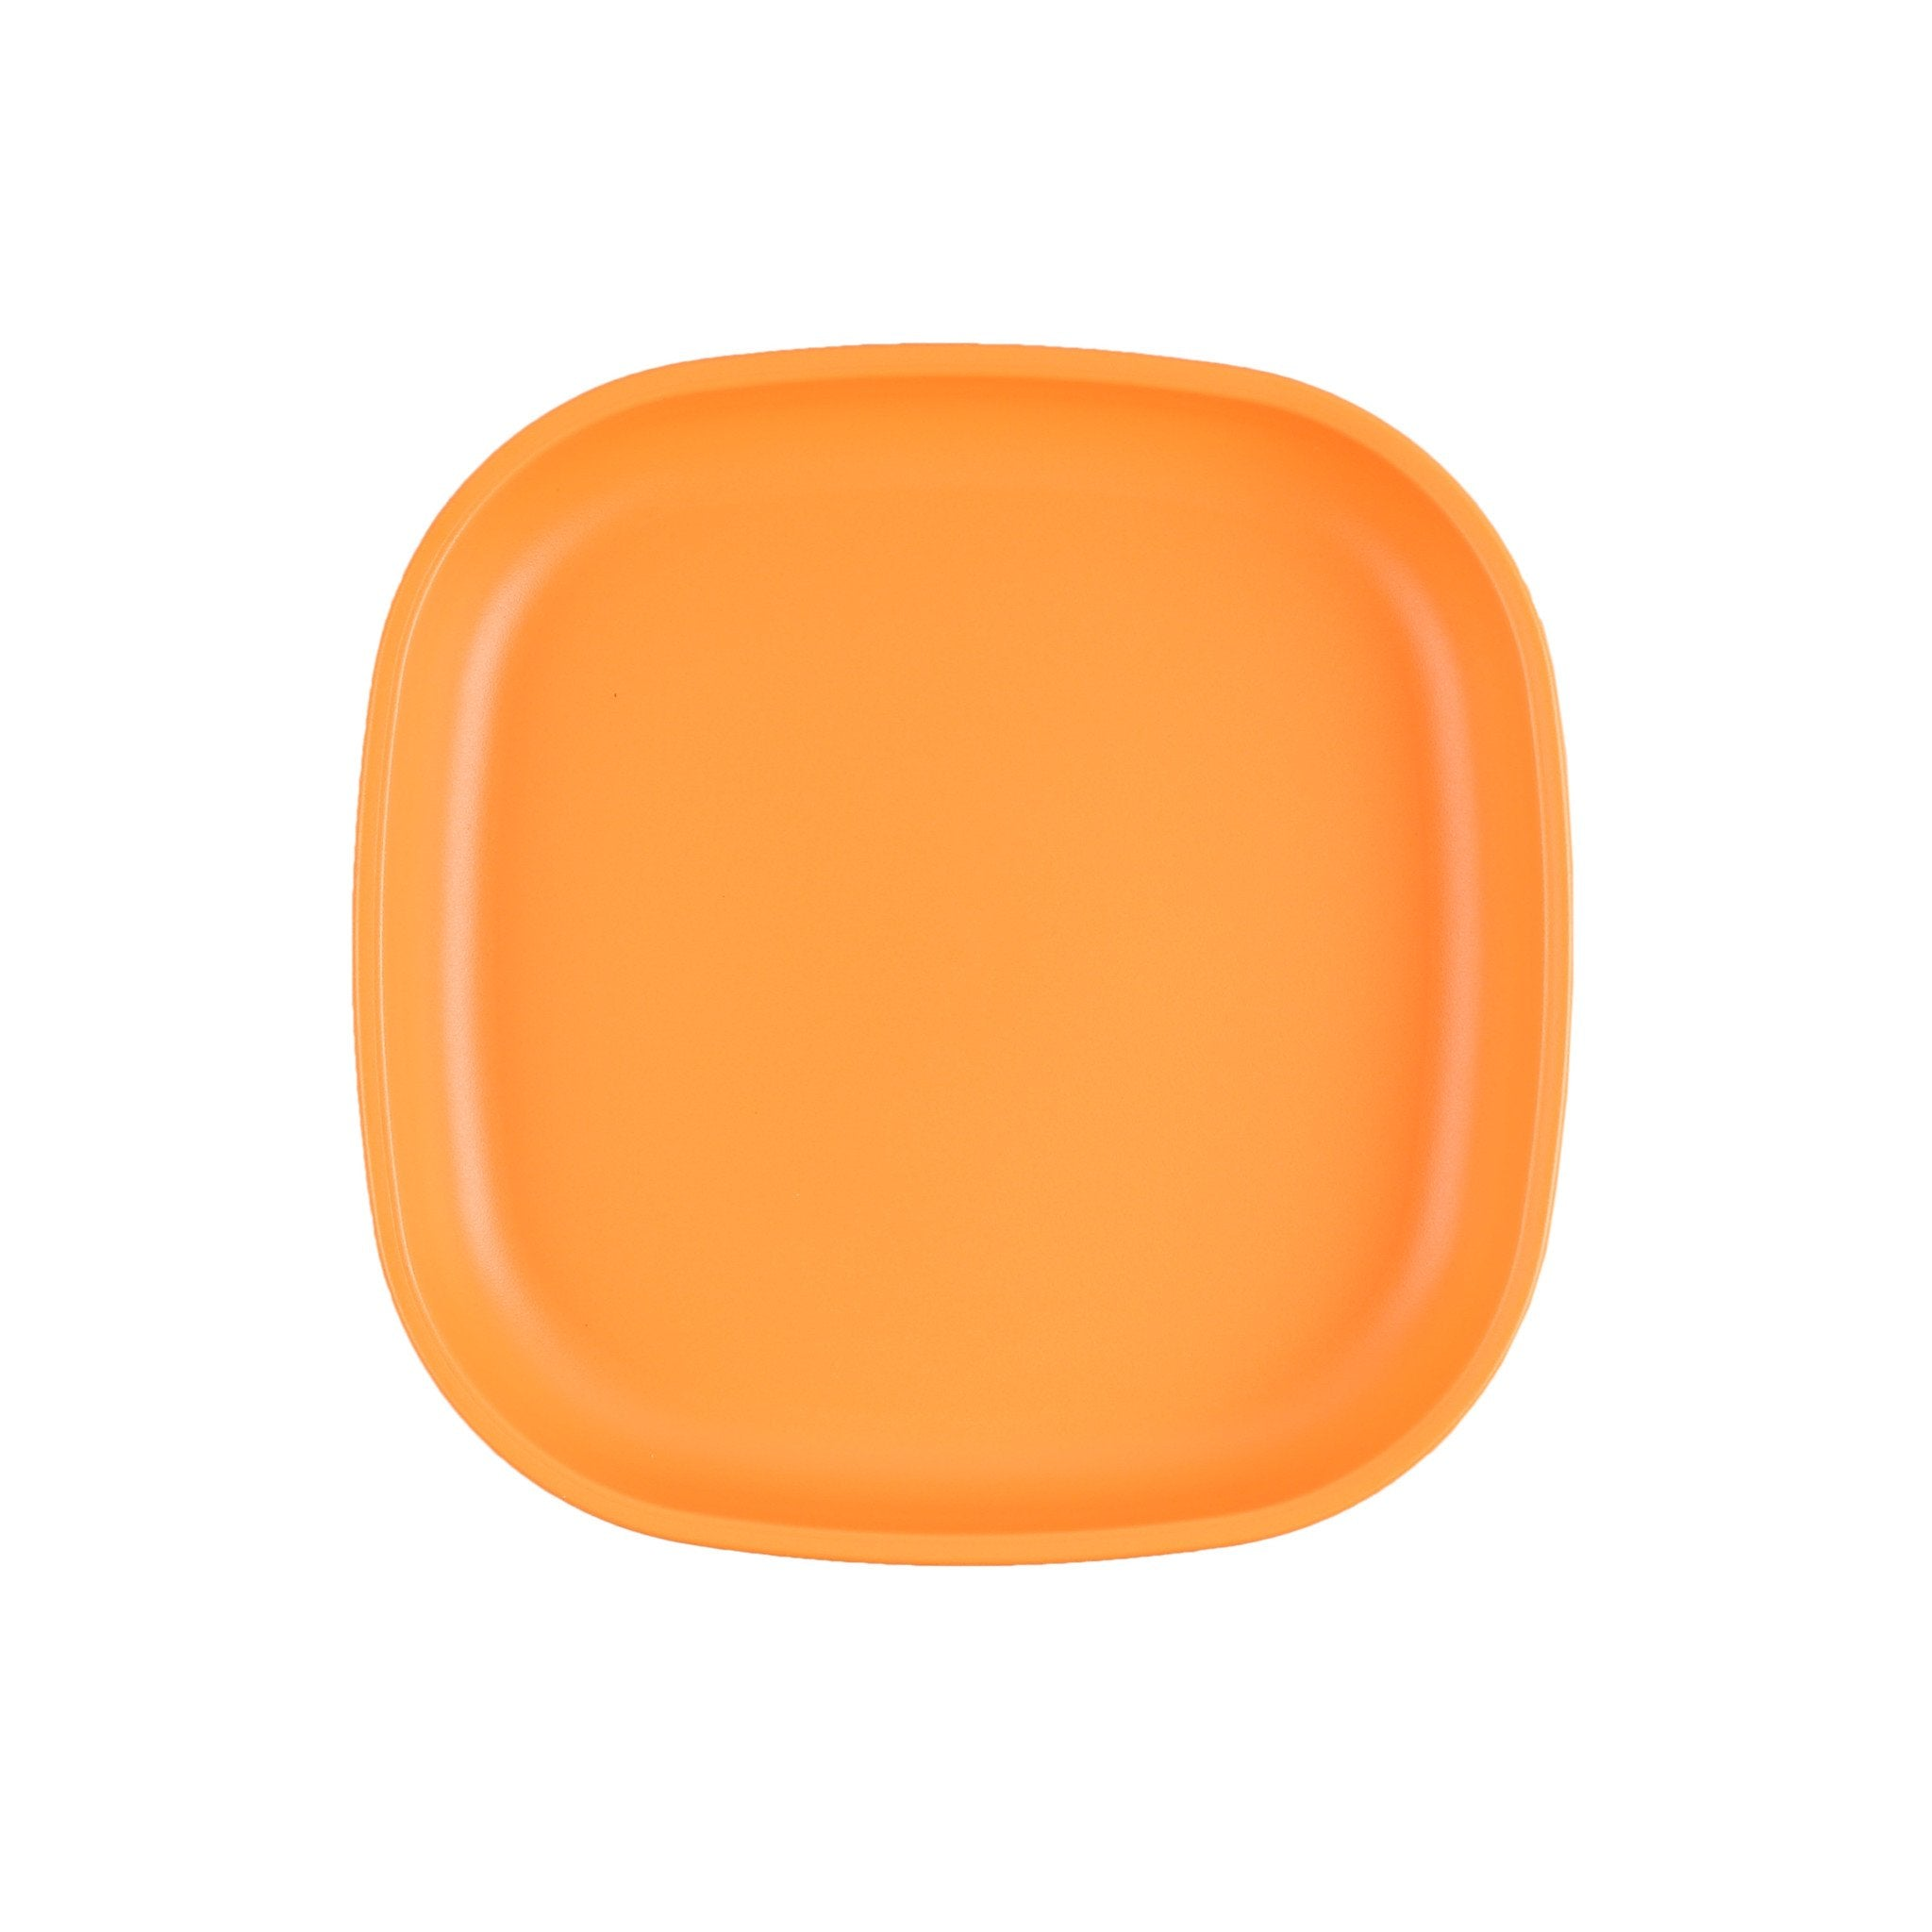 Replay Large Plate Replay Dinnerware Orange at Little Earth Nest Eco Shop